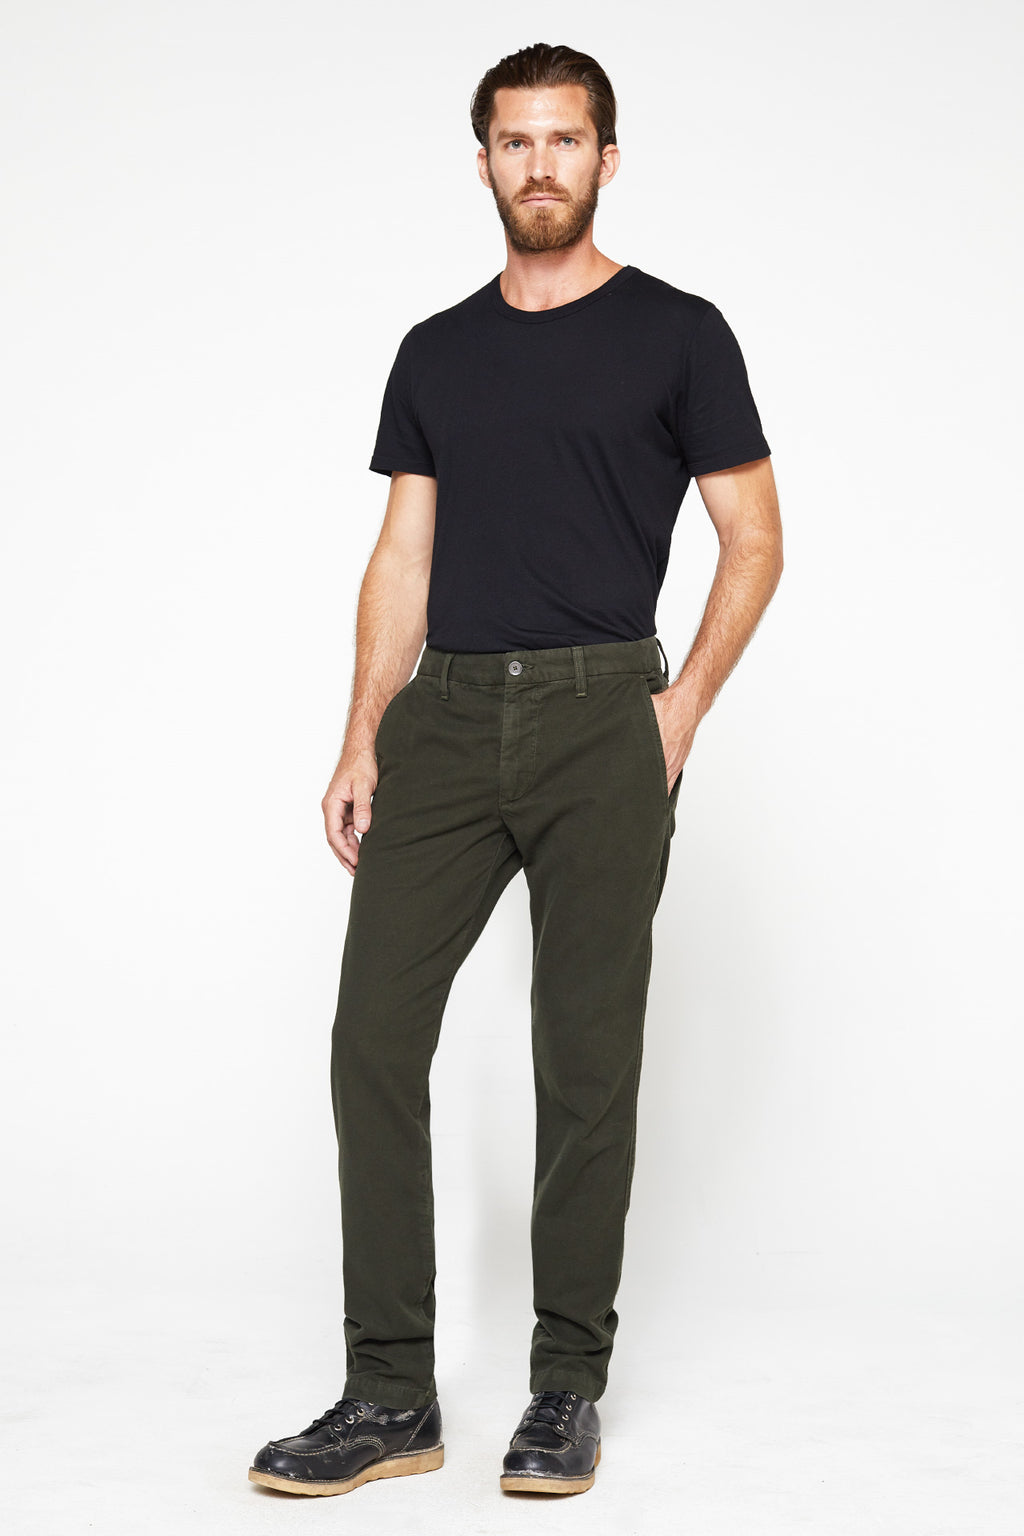 The Liam Pant in Forest_Head to Toe